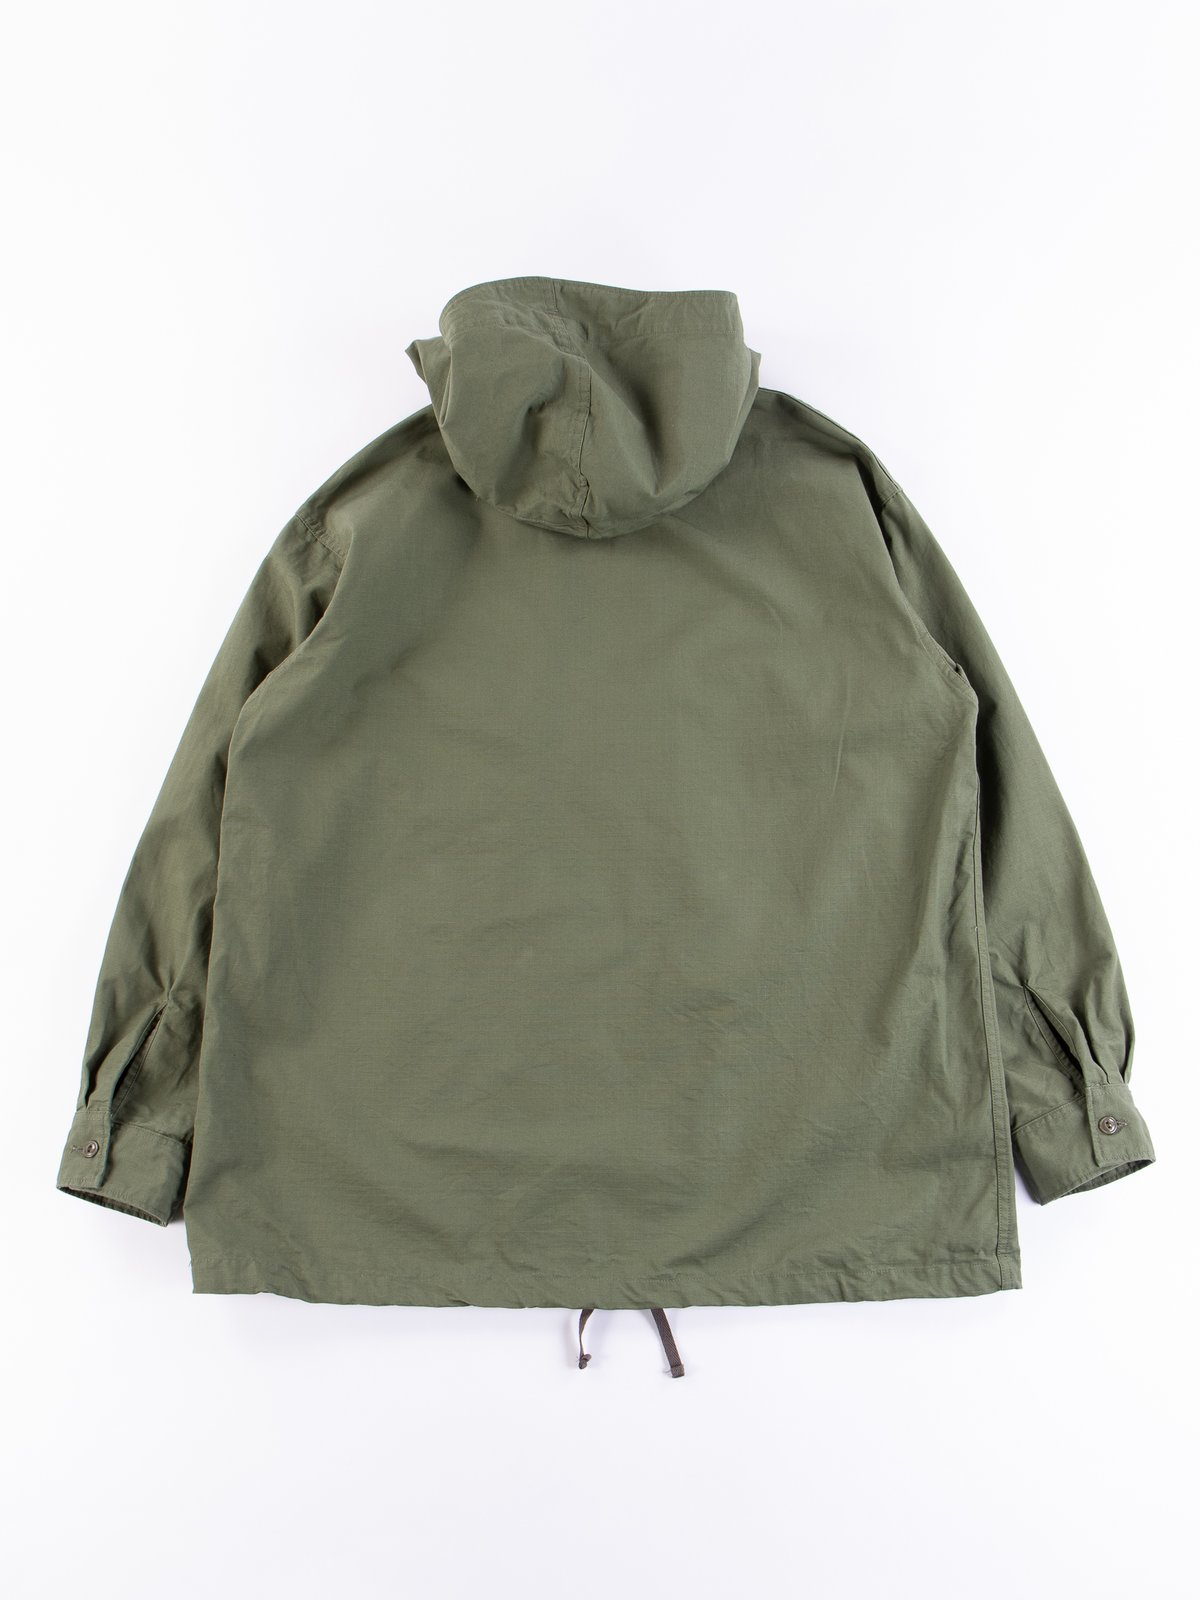 Olive Cotton Ripstop Cagoule Shirt - Image 8